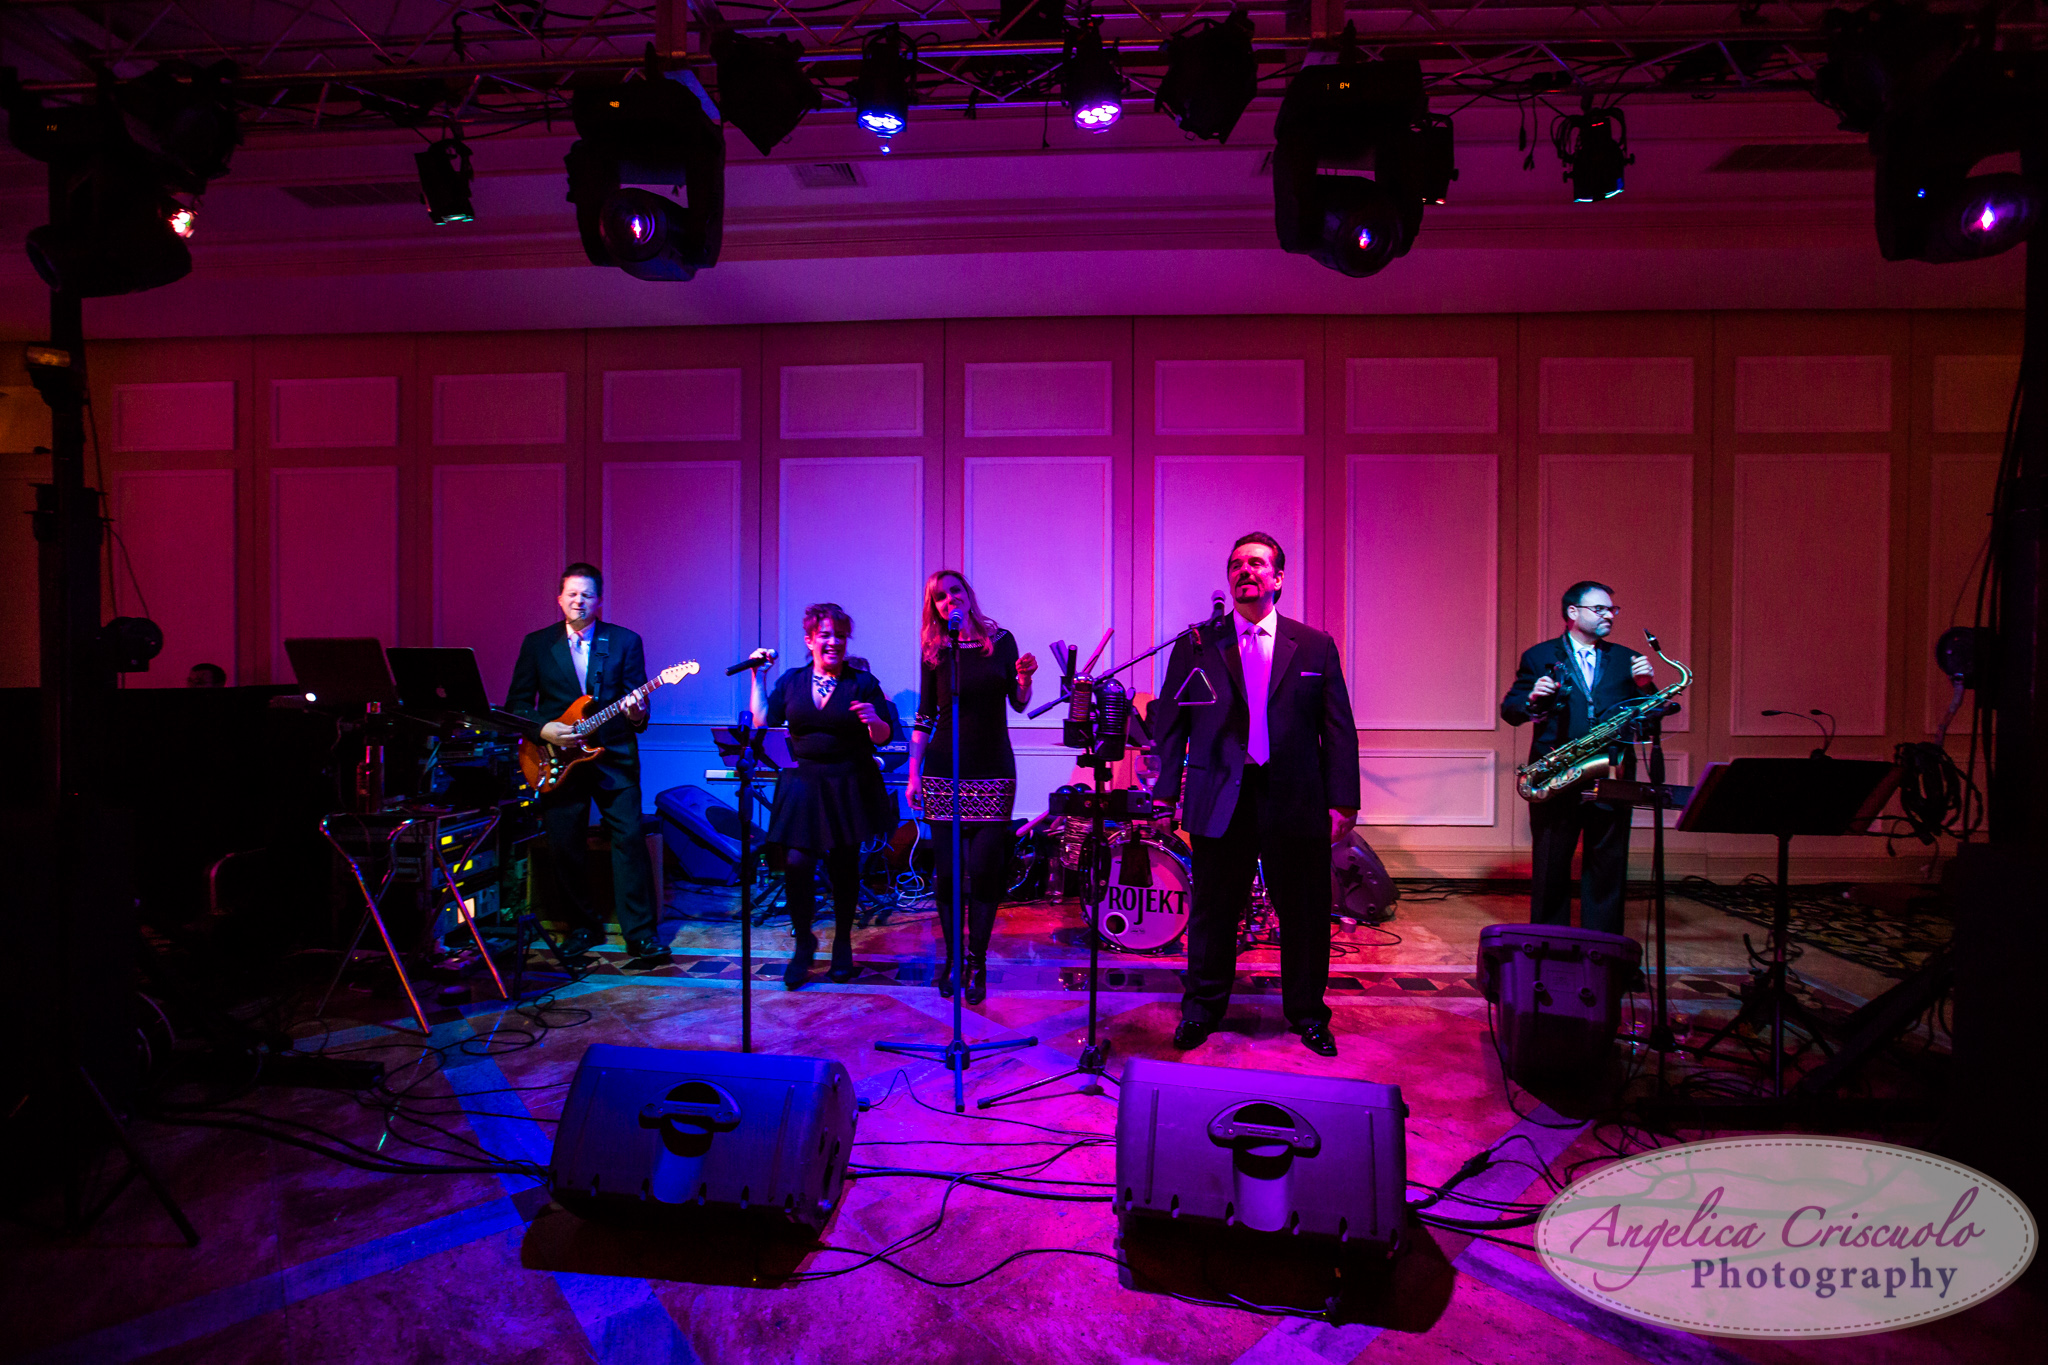 New York Wedding Photographer The Project live band